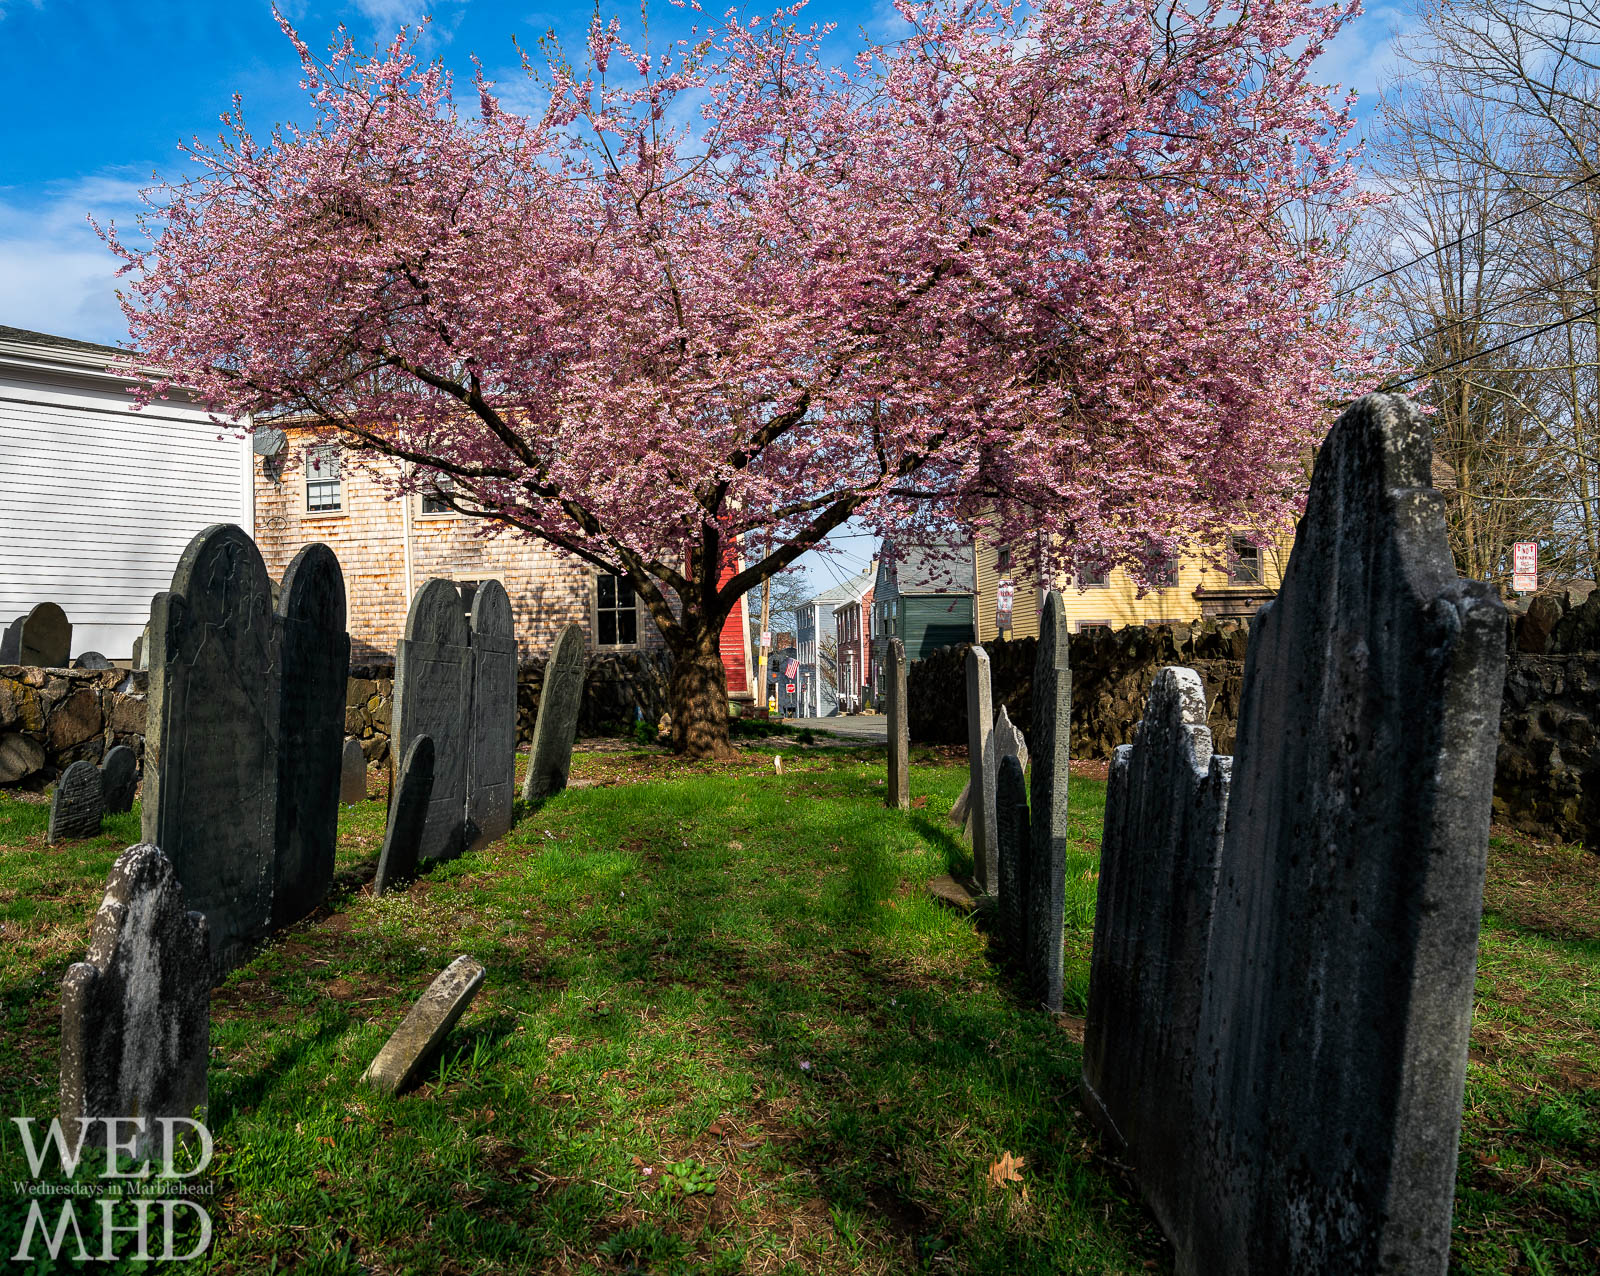 A cherry blossom tree in full bloom marks the entrance to the Harris Street cemetery with views of houses and an American flag just beyond its canopy